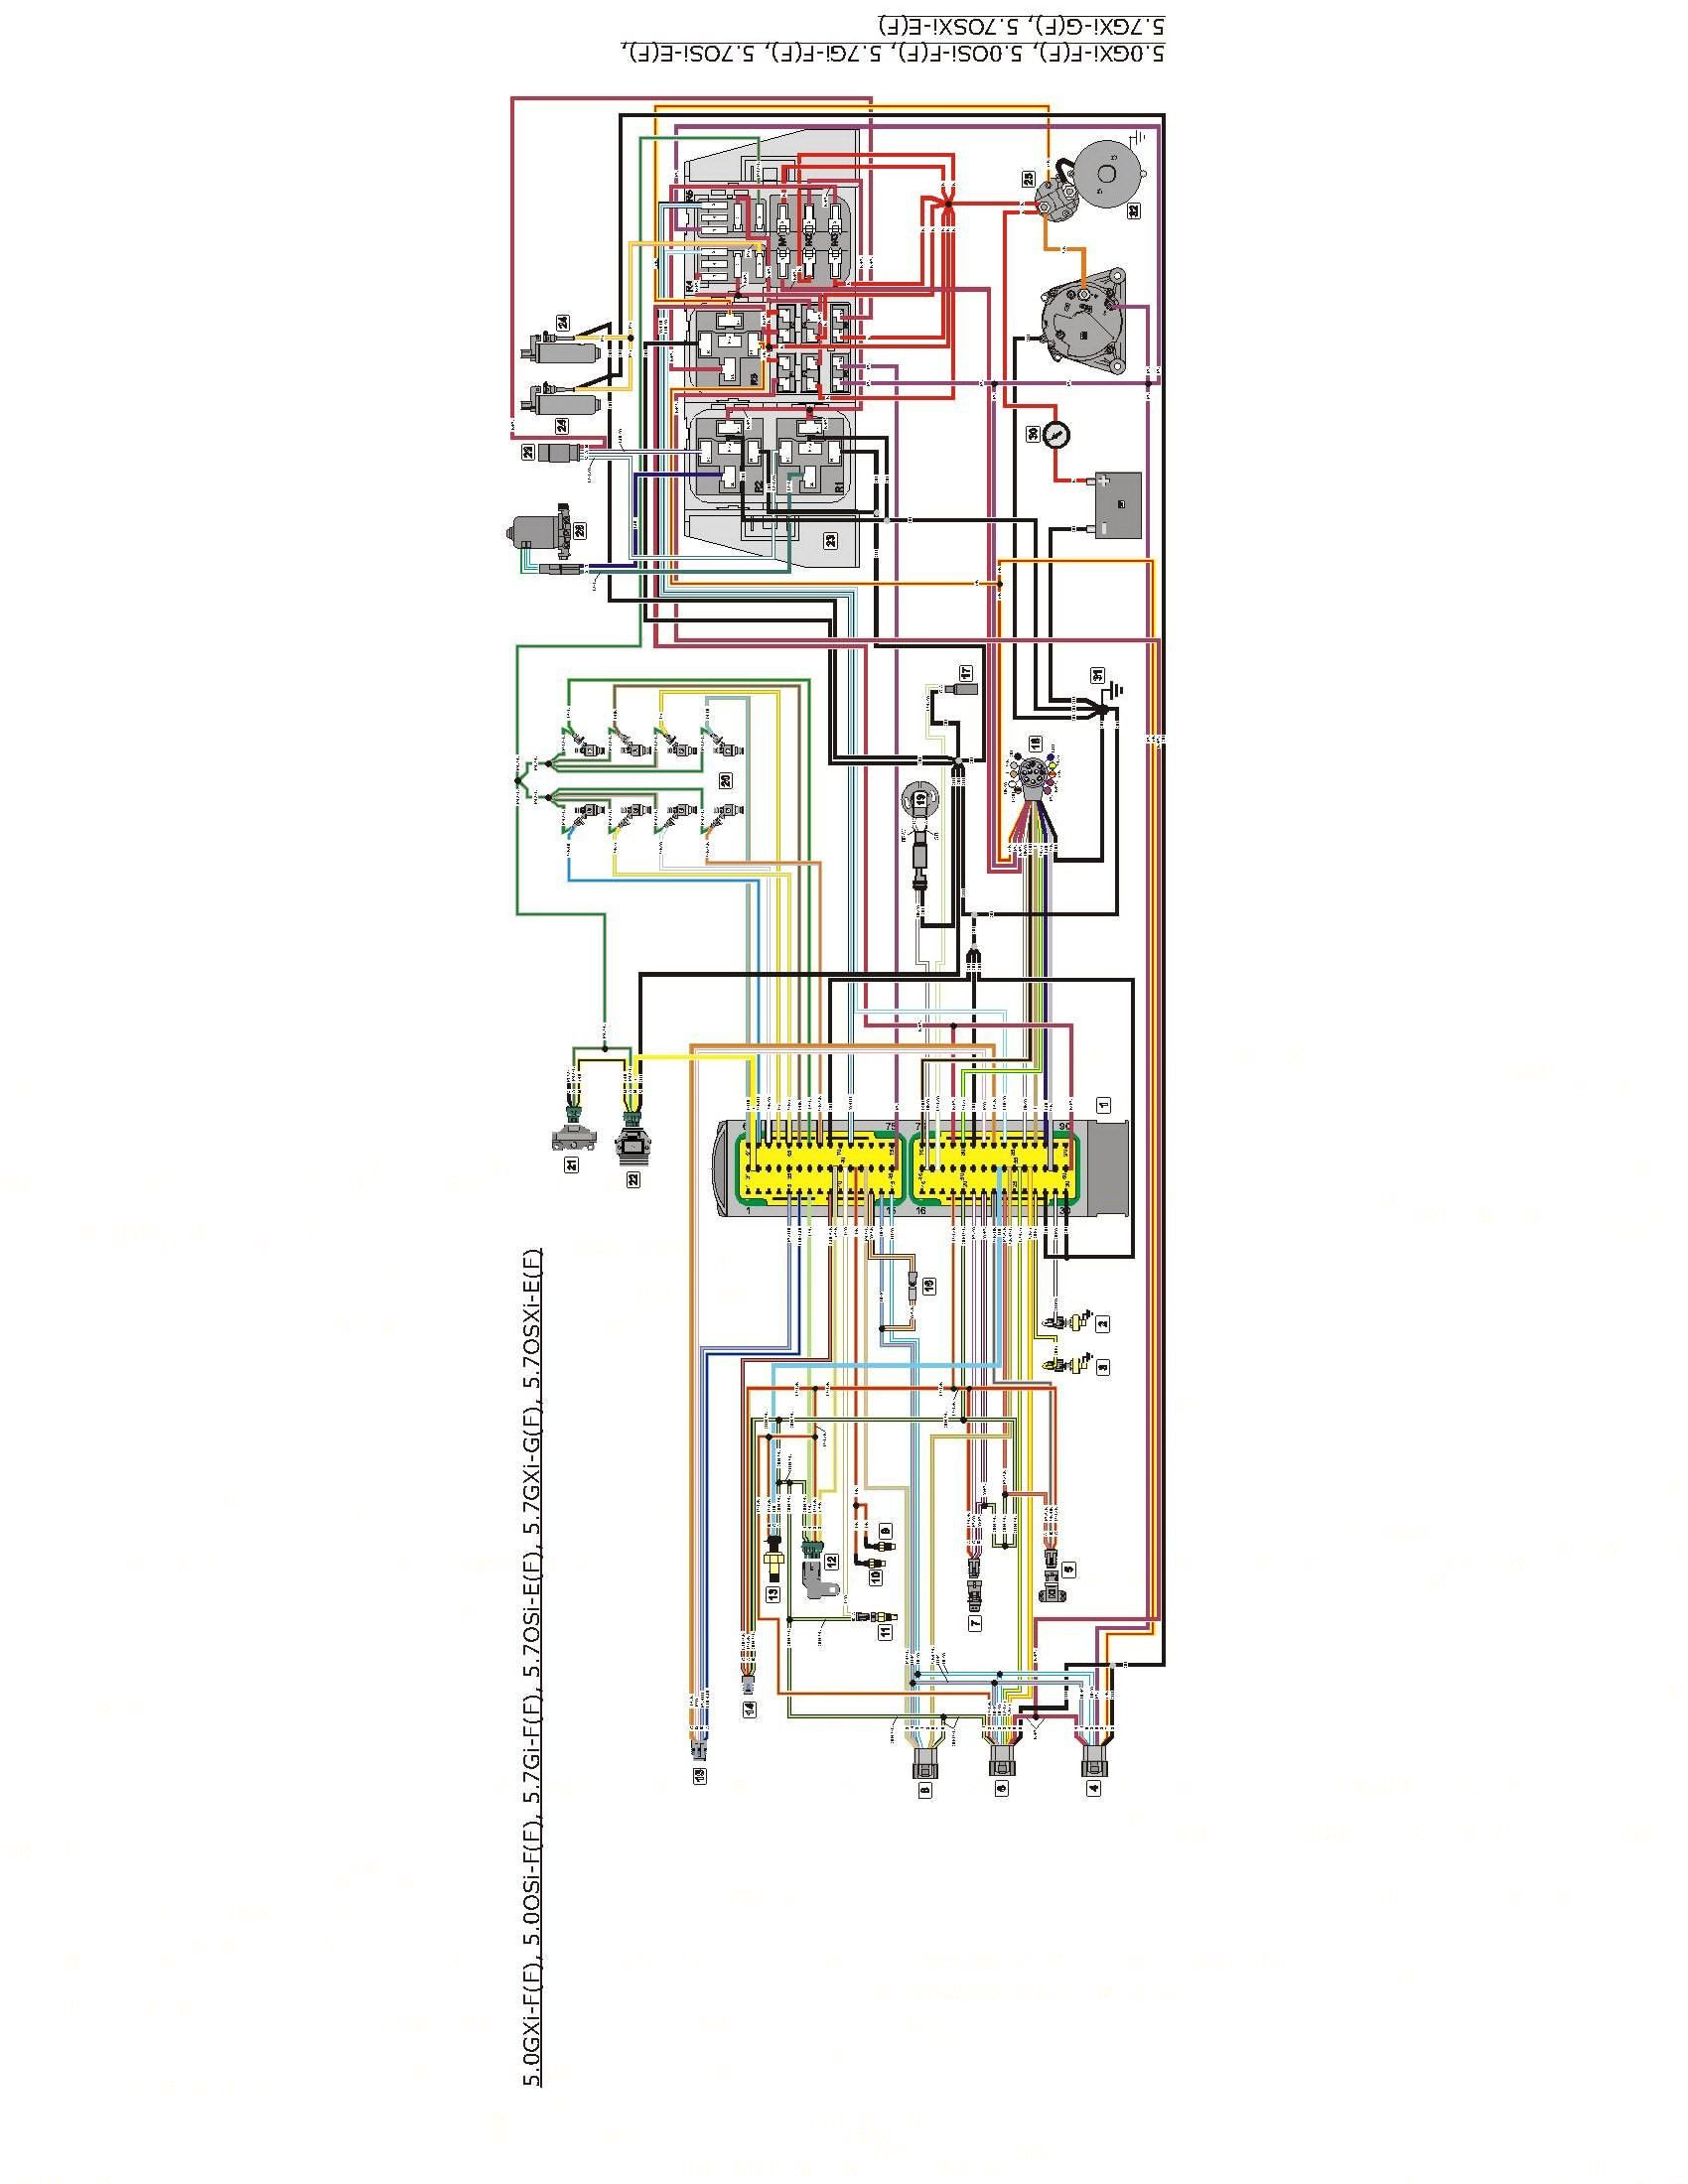 Tilt Trim Mercury Outboard Power Trim Wiring Diagram